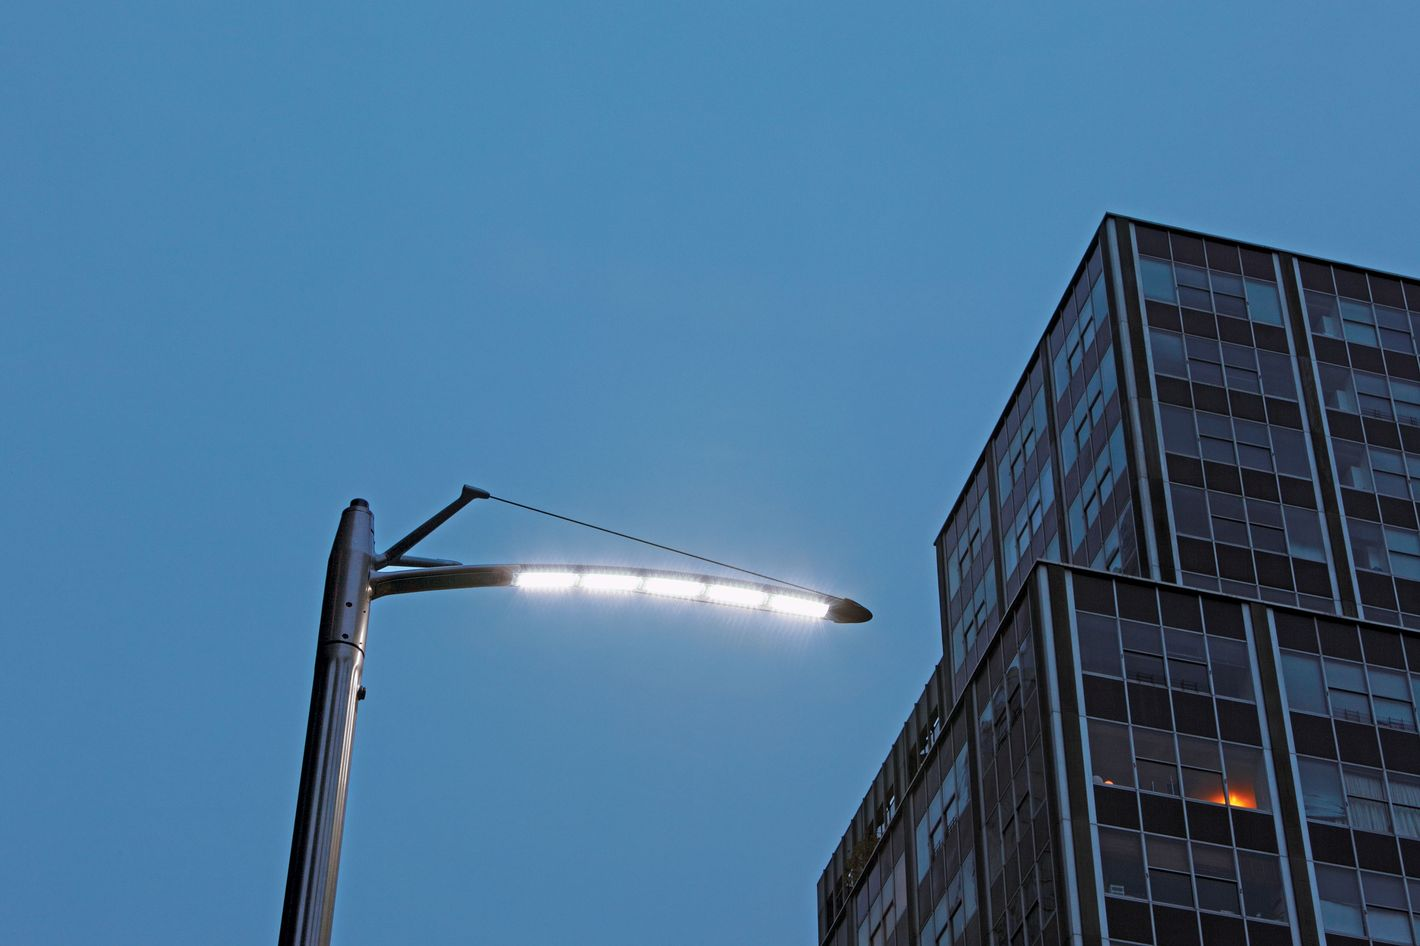 New yorks new streetlights are robbing nighttime of its romance